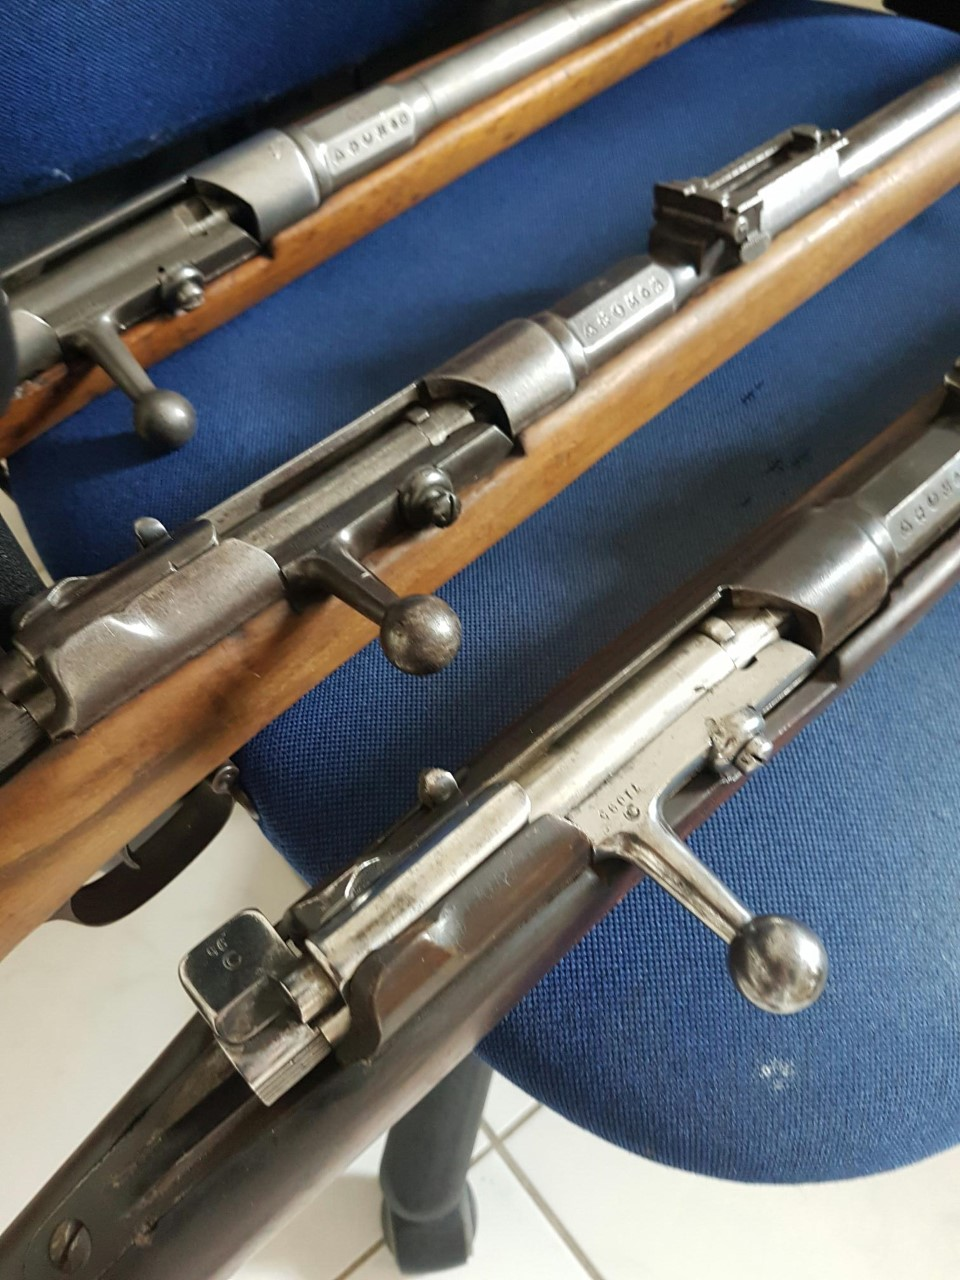 recharger du 9.5x60r mauser 1887  - Page 4 Thumb100